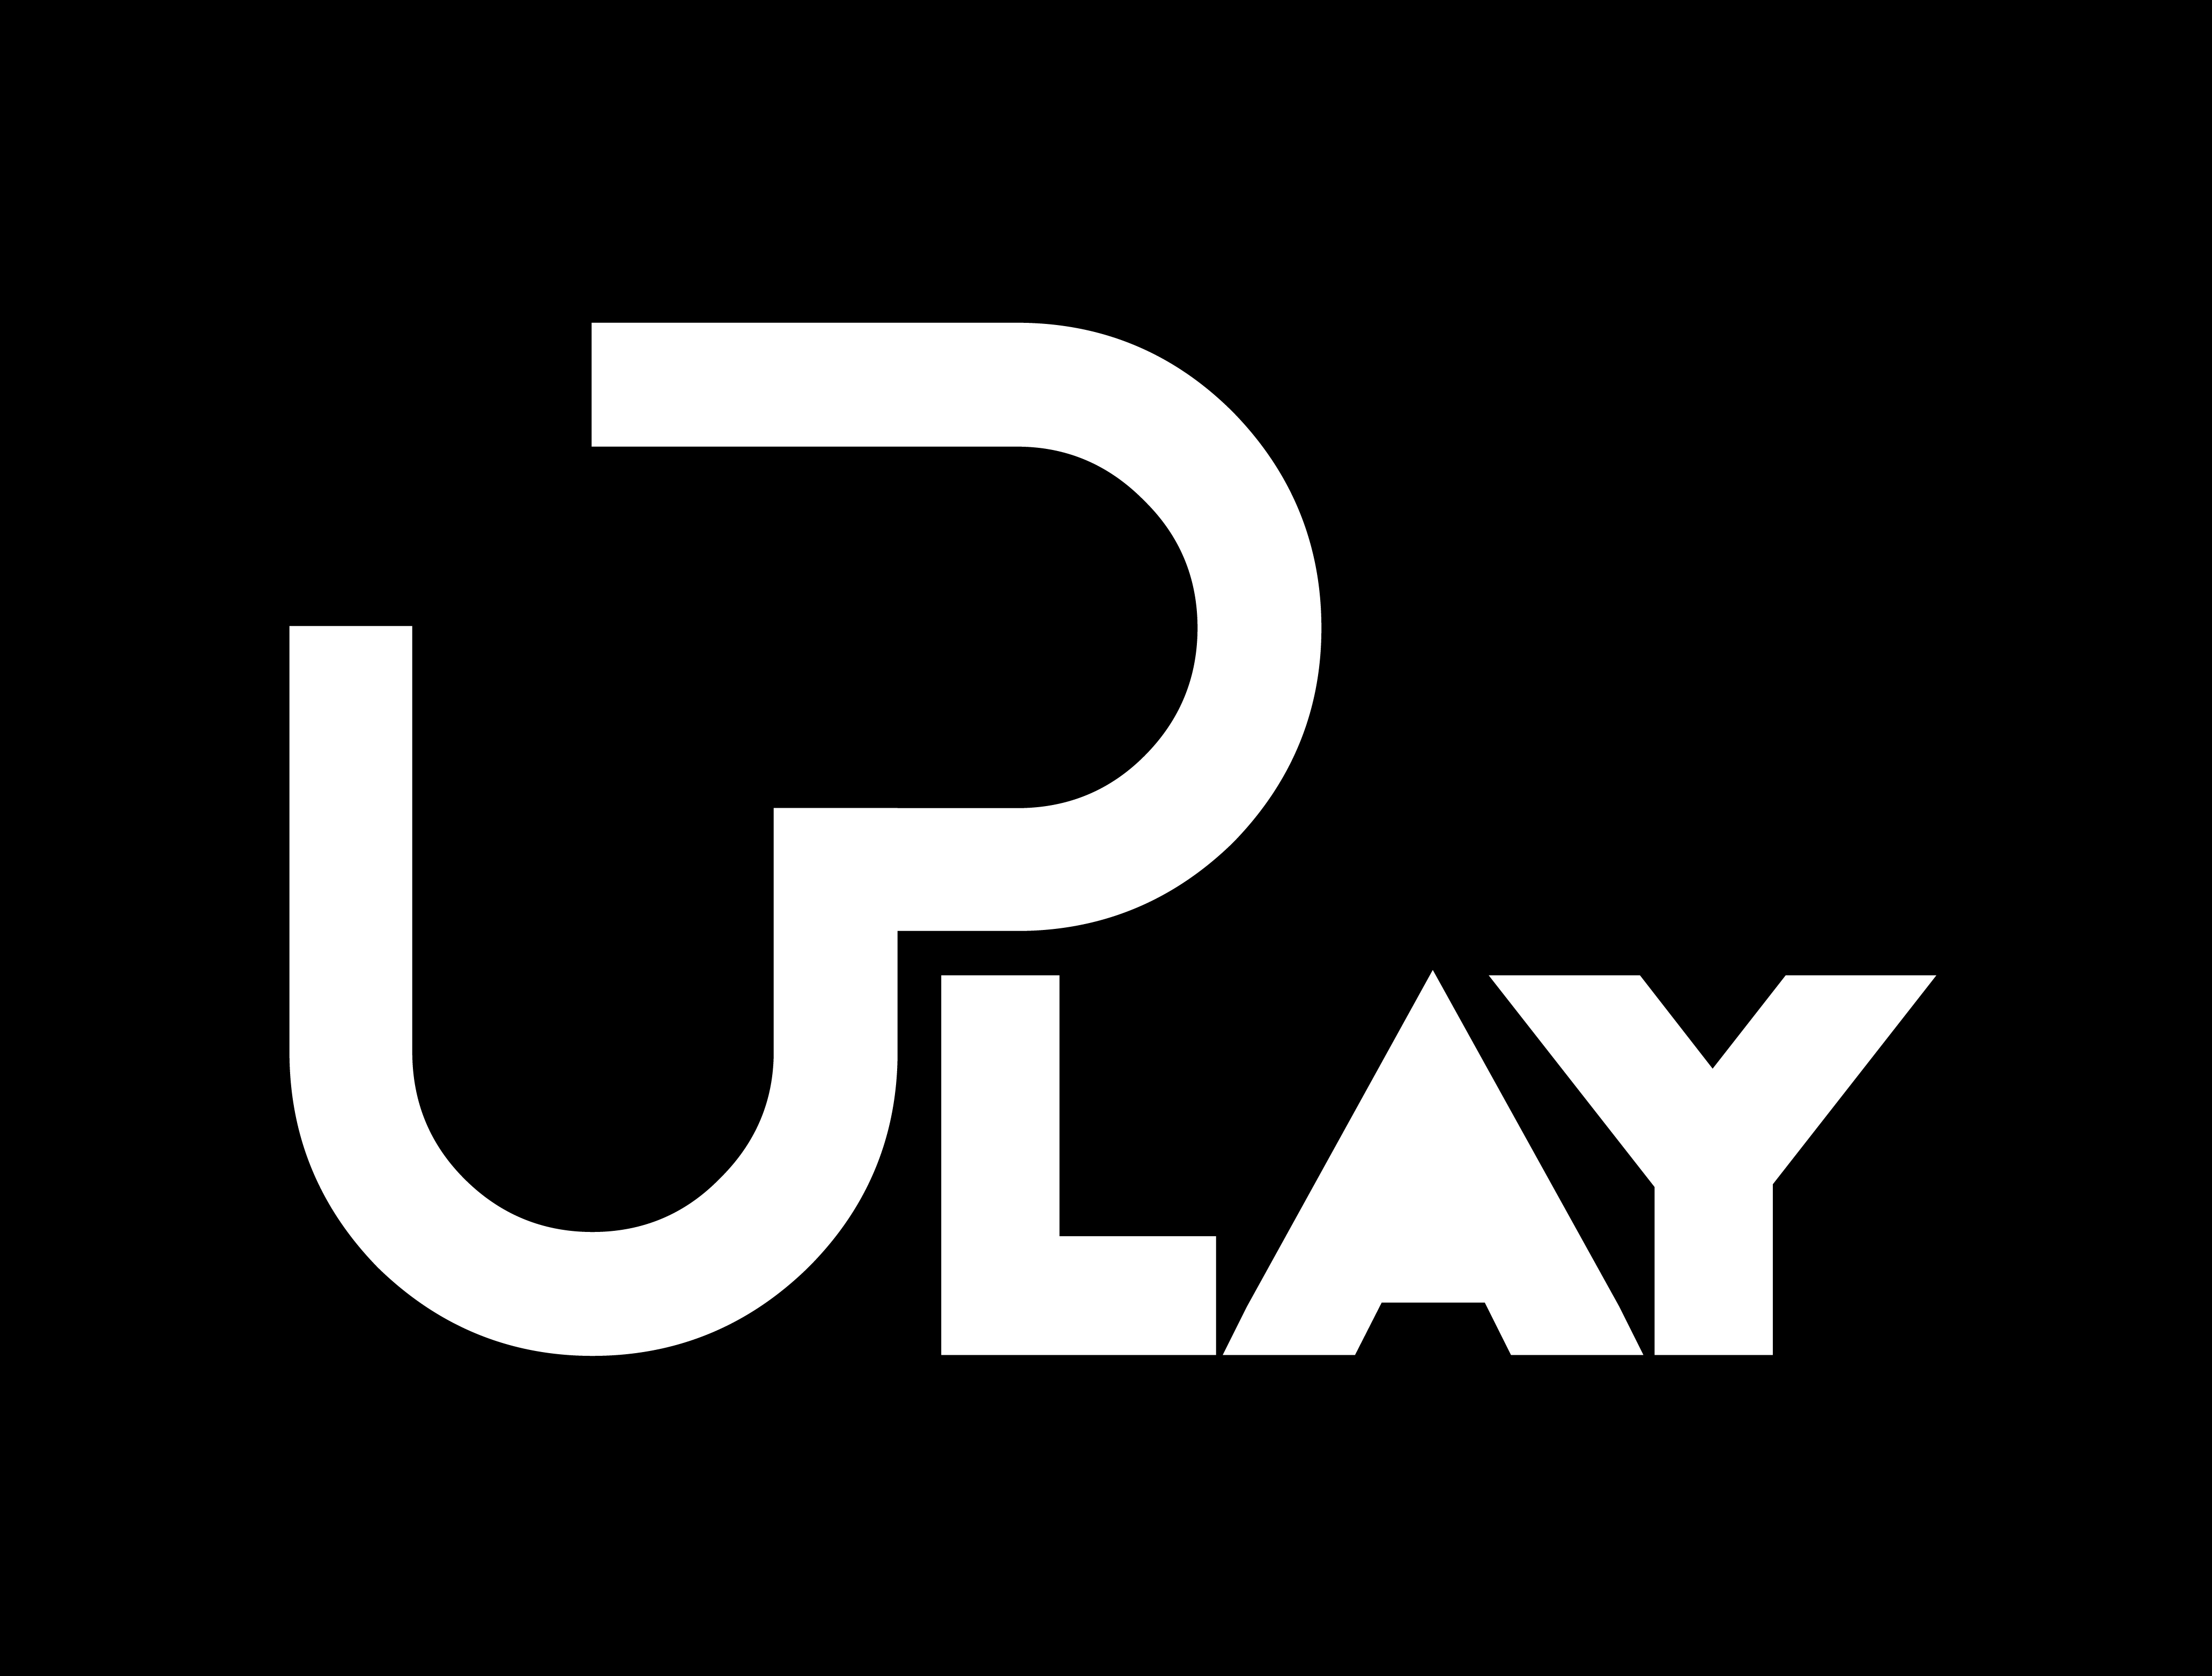 Uplay tm brand uplay tablet share this stopboris Images